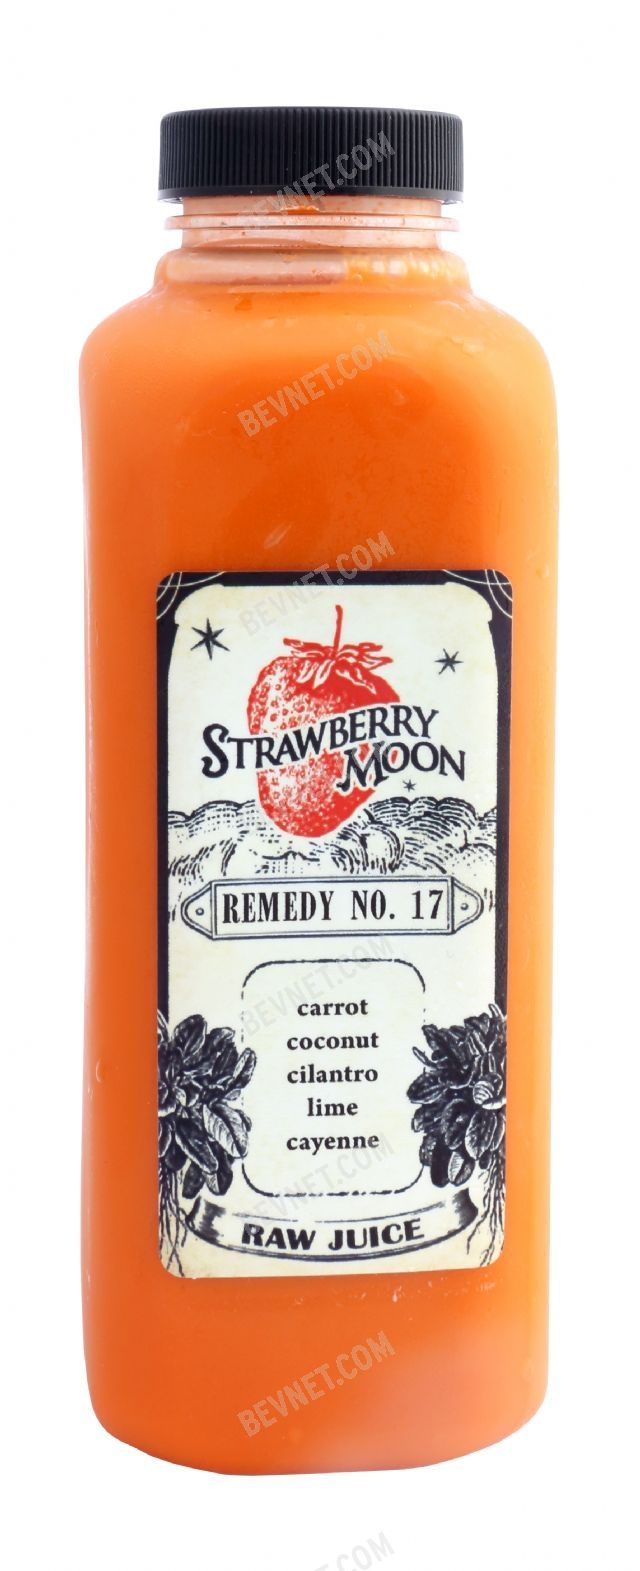 Strawberry Moon Juice: